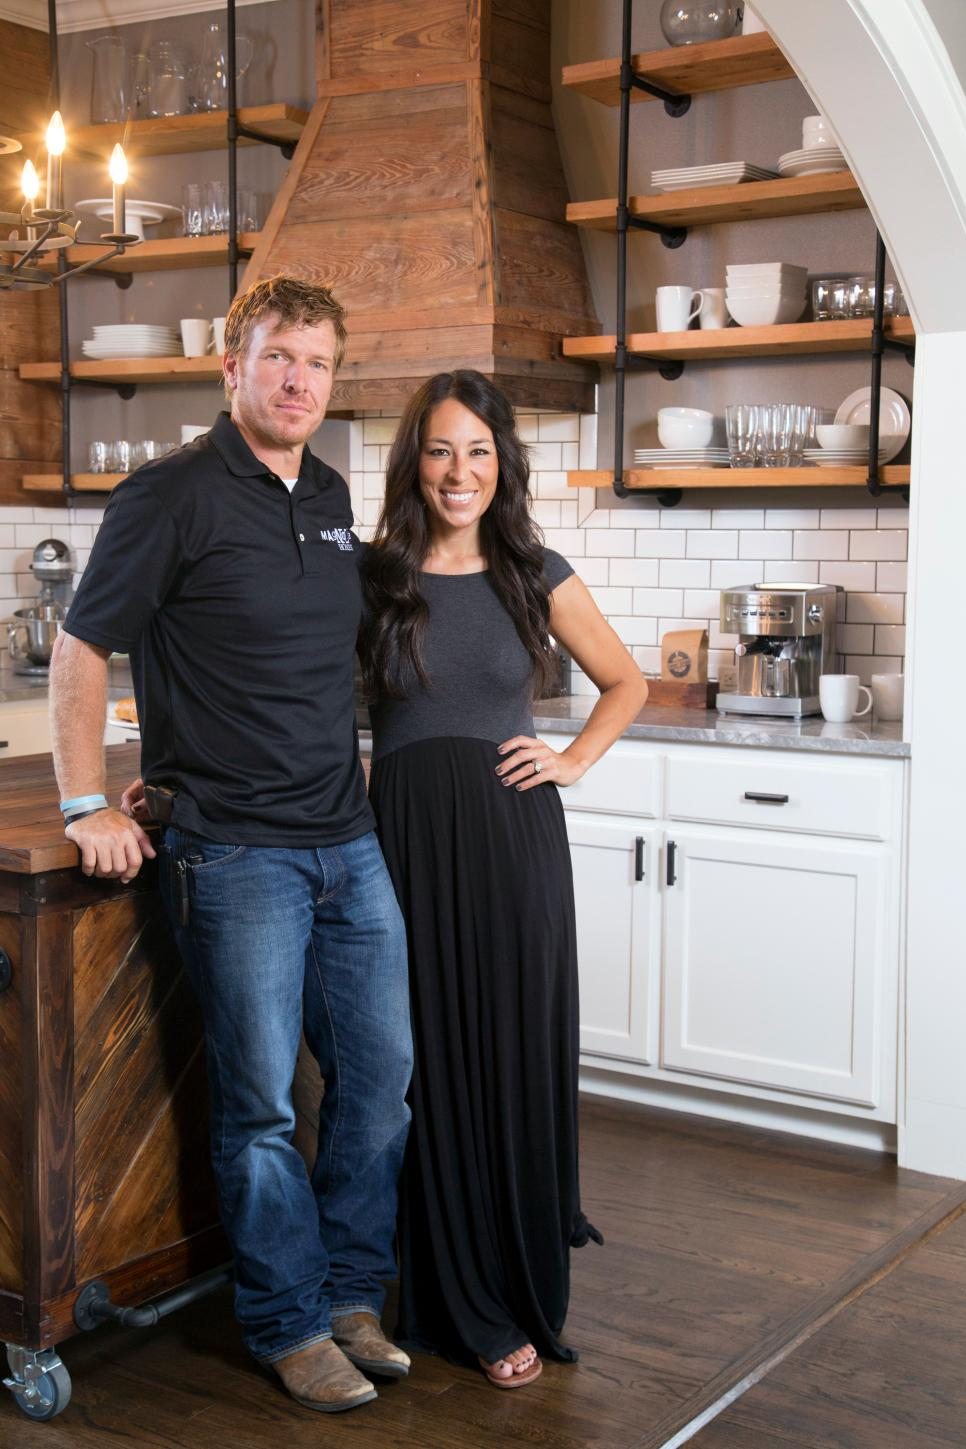 Fixer upper a craftsman remodel for coffeehouse owners - Chip et joanna gaines ...